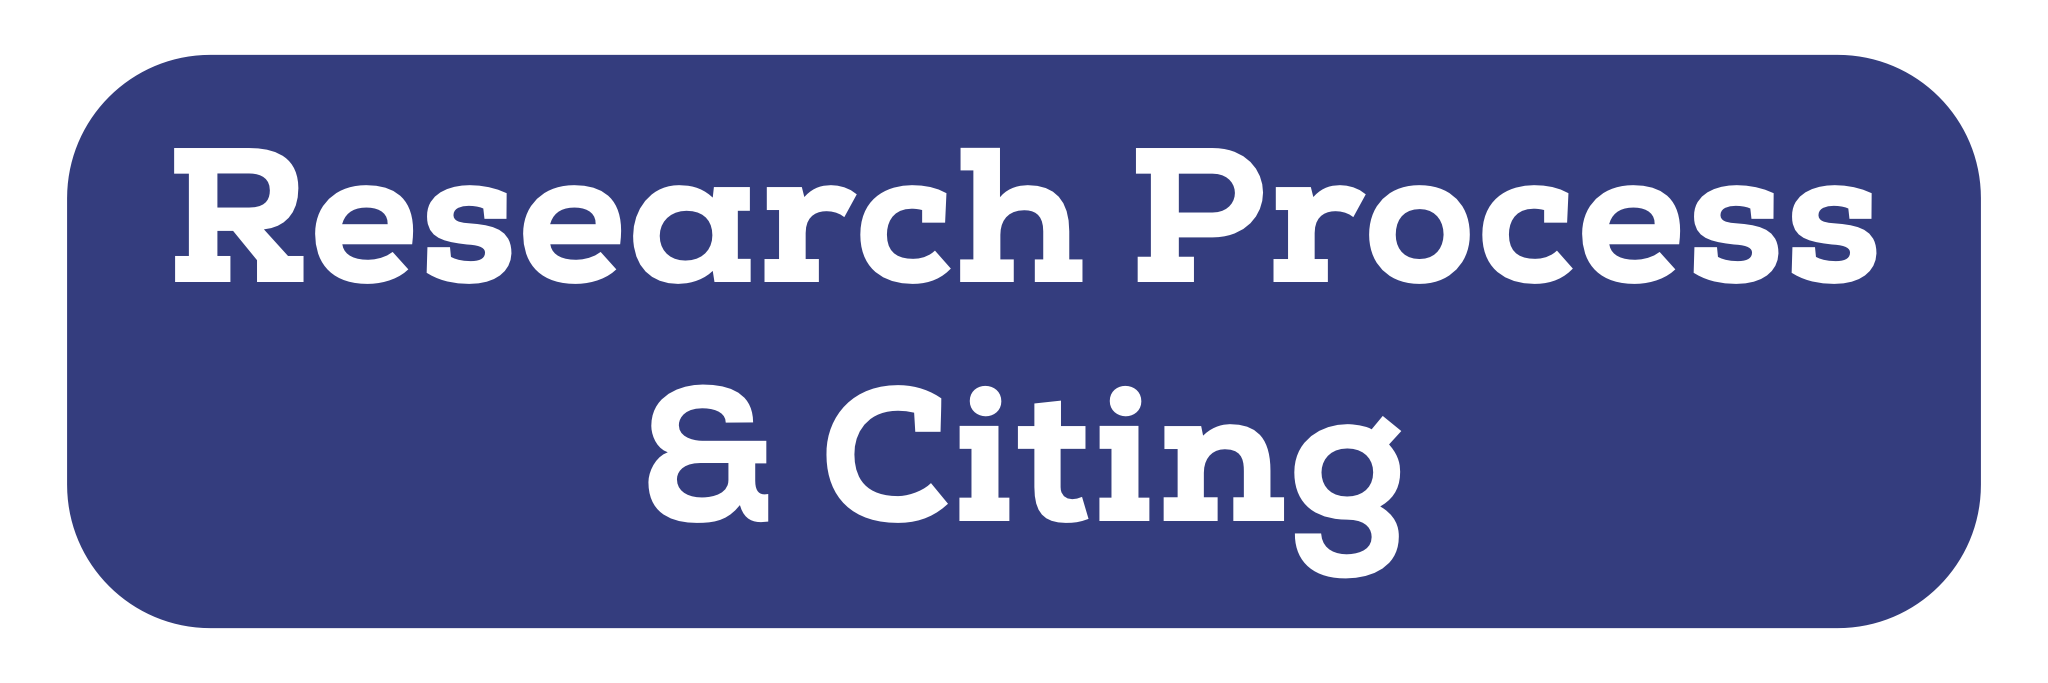 Research Process & Citing